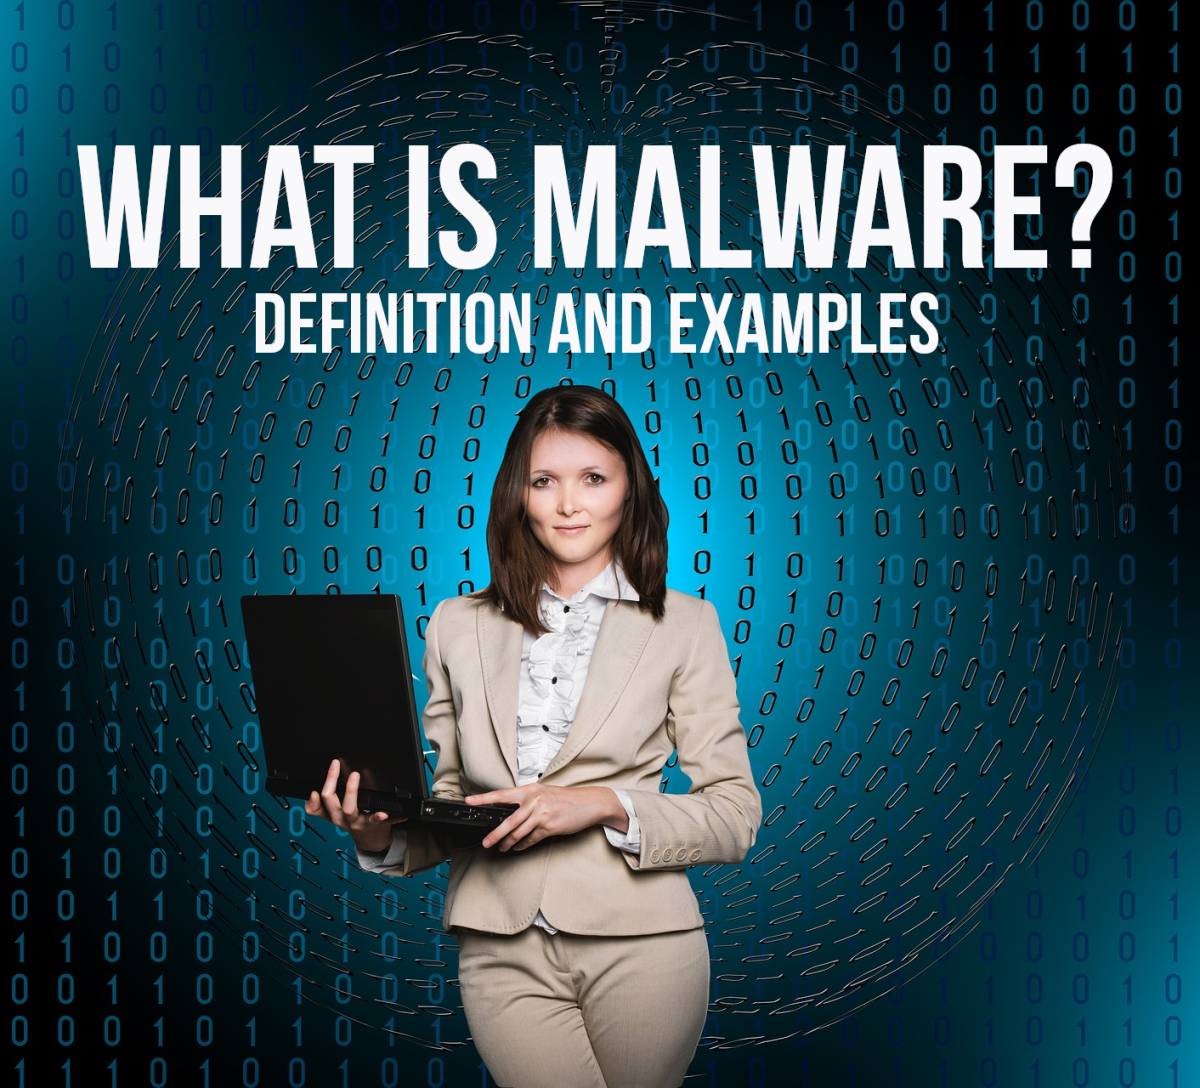 For a definition of malware plus six examples, please read on...